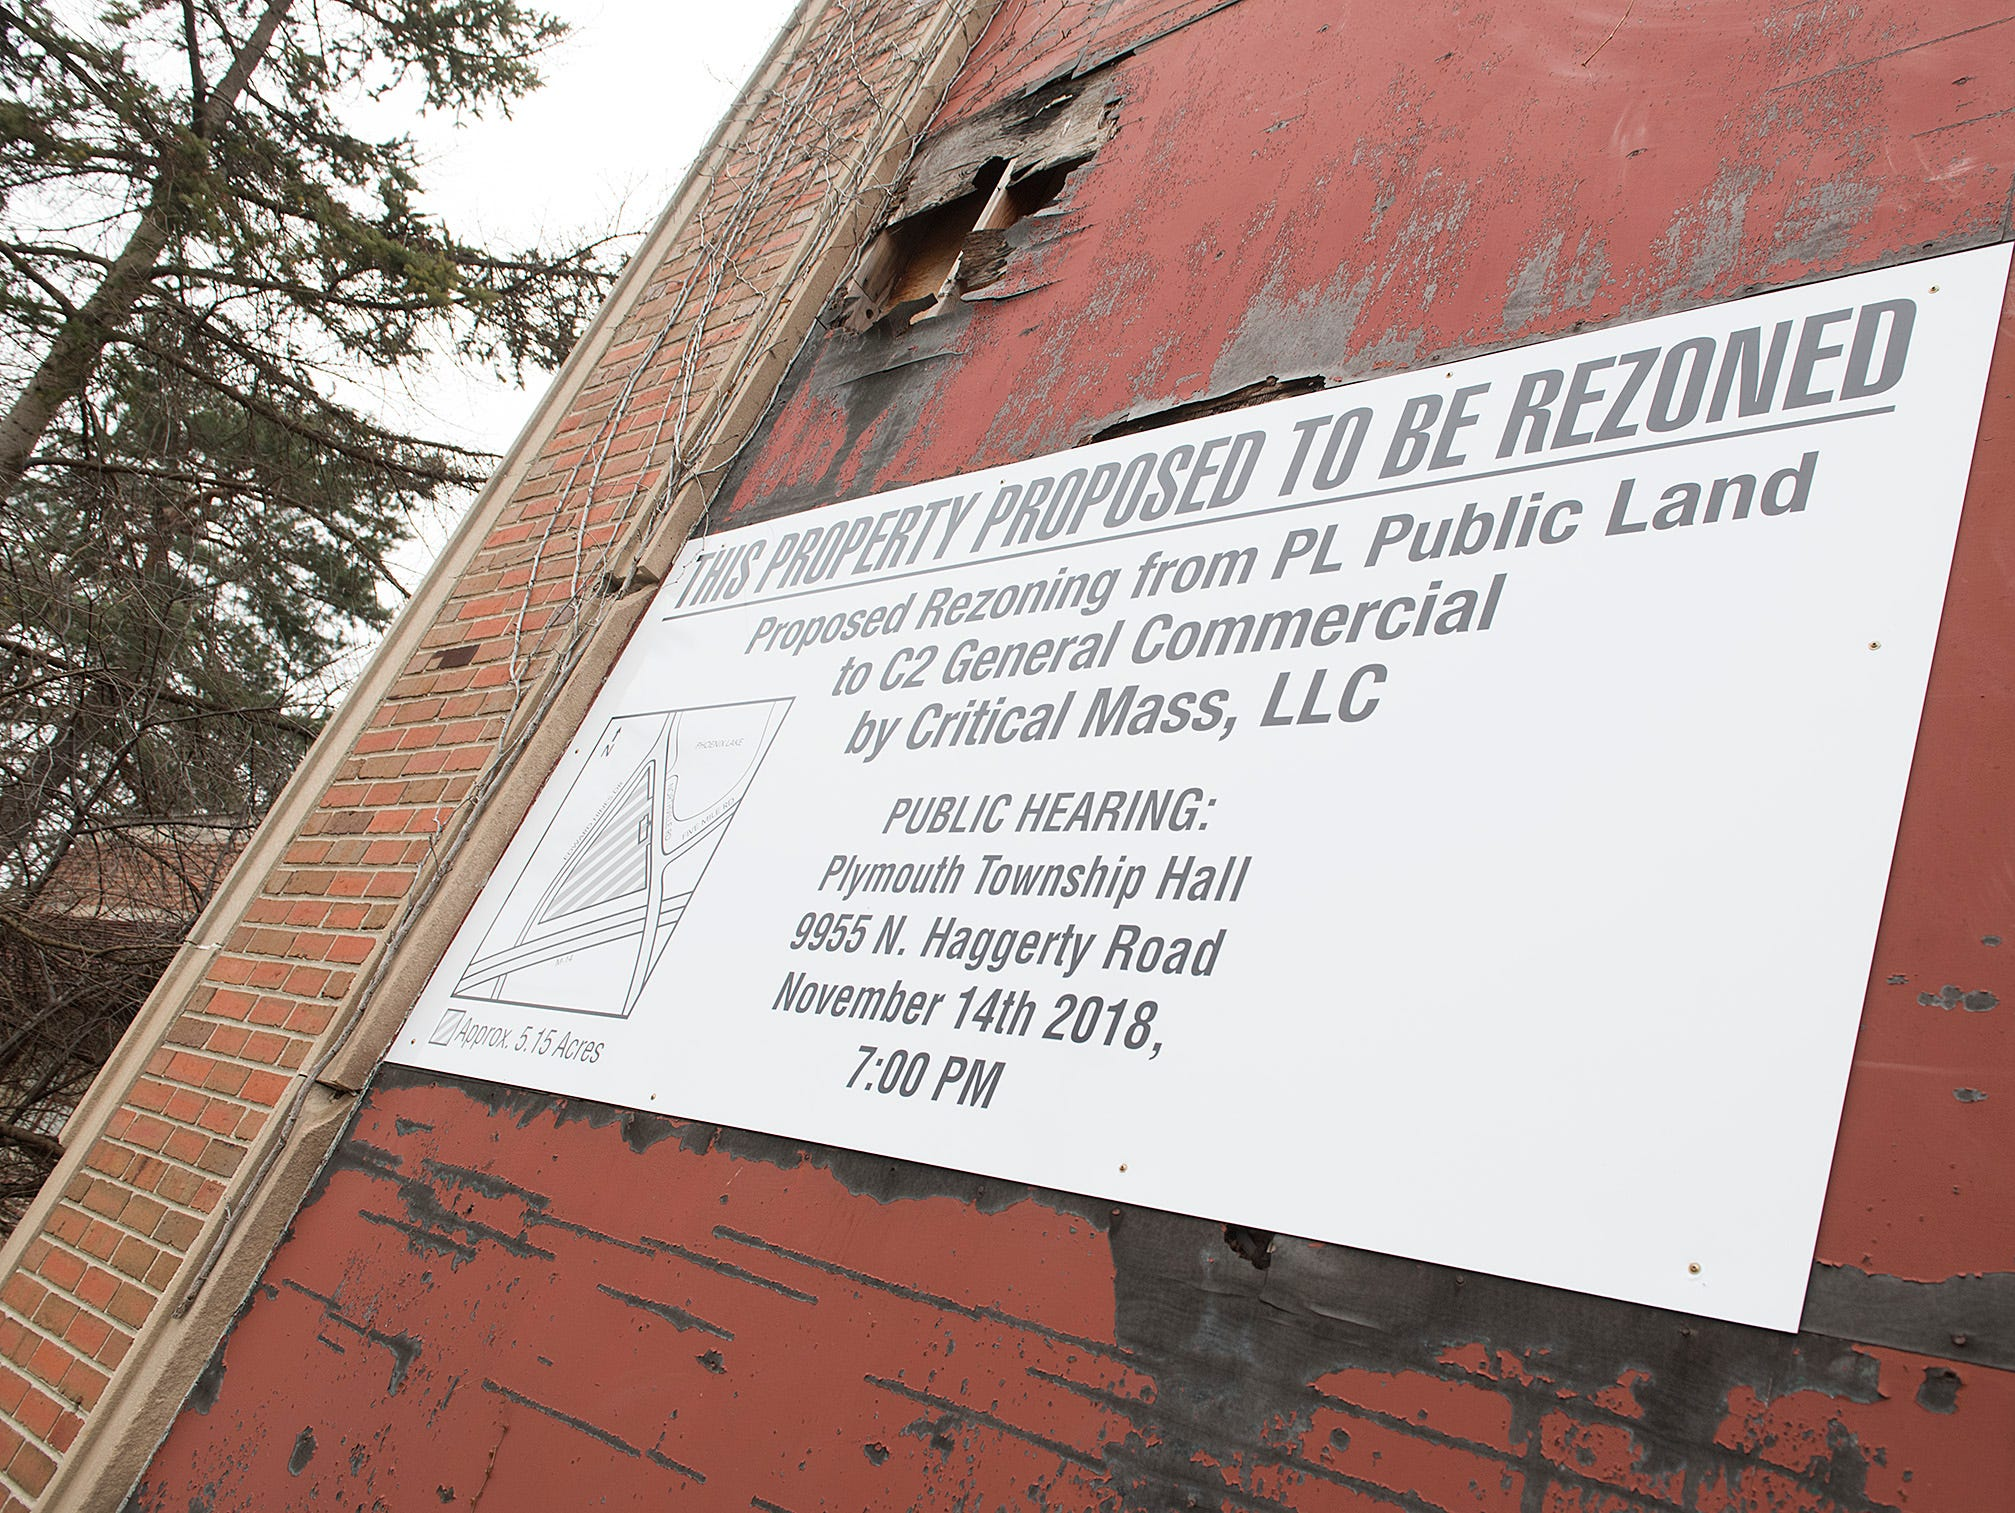 Current zoning of Phoenix Mill is Public Land. Plans are to change to C2 General Commercial so the property may be sold.